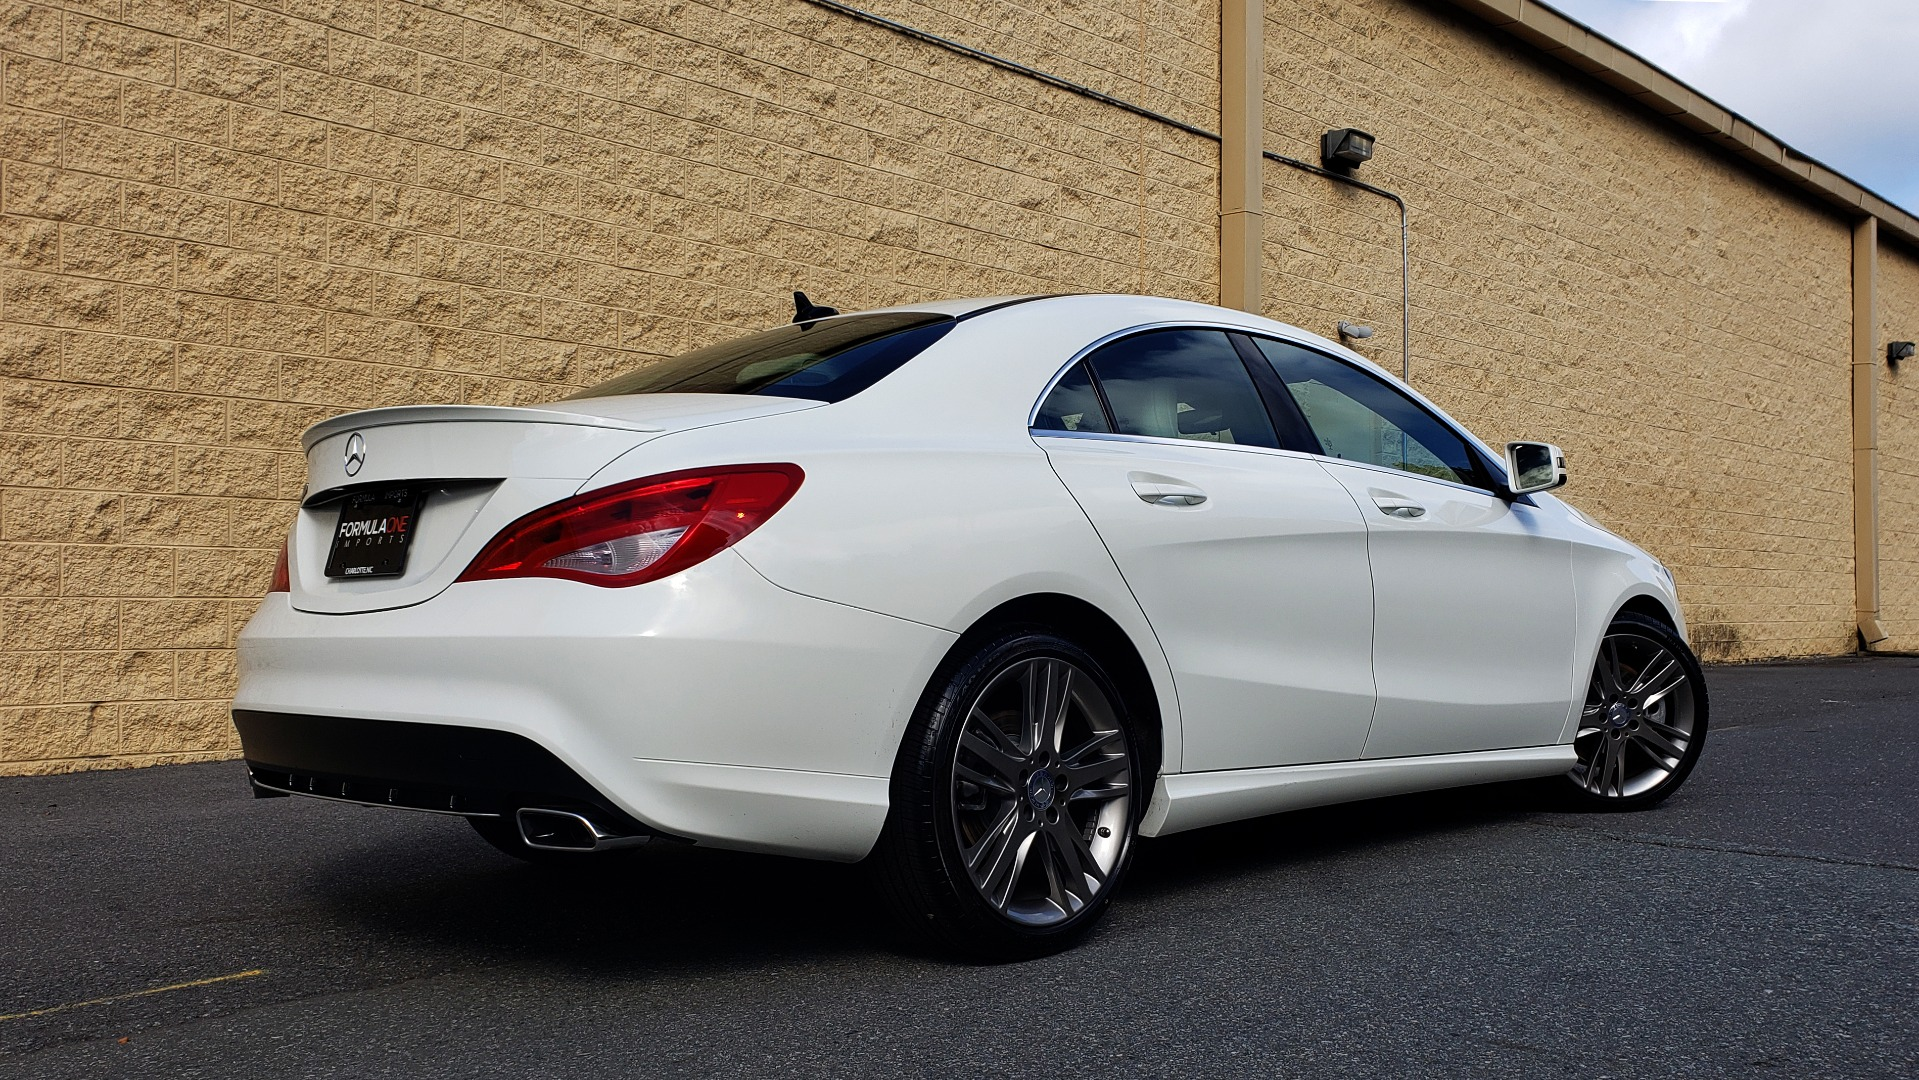 Used 2015 Mercedes-Benz CLA-Class CLA250 / FWD / SUNROOF / SPORT SUSP / CAMERA for sale Sold at Formula Imports in Charlotte NC 28227 6